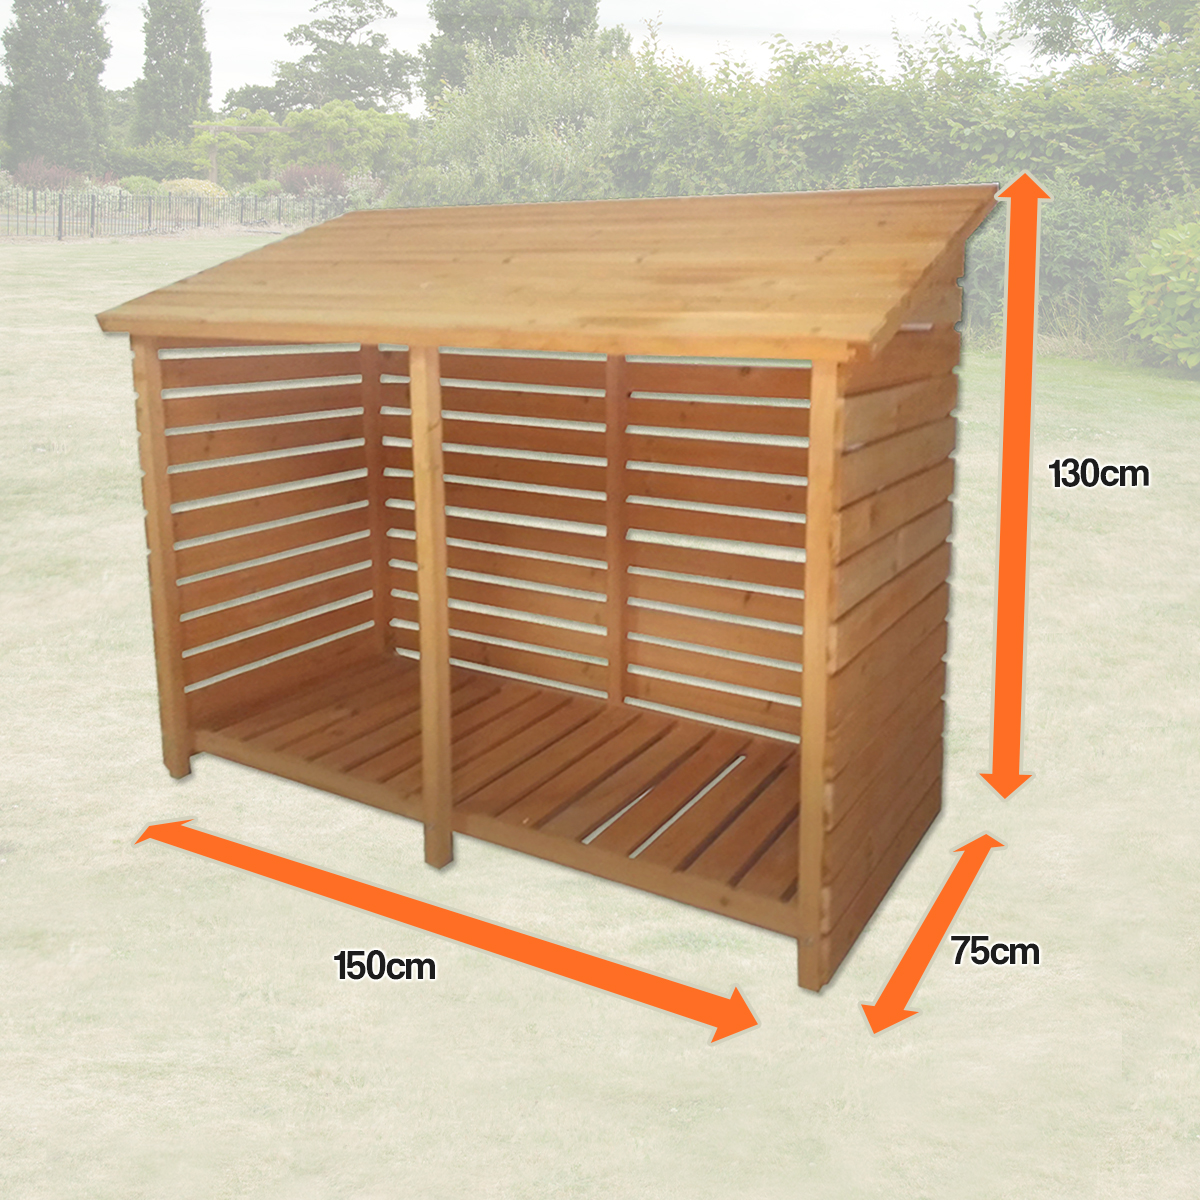 Merveilleux Sentinel LARGE DOUBLE WOOD STORE GARDEN LOG STORAGE SHED FIREWOOD WOODEN  OUTDOOR TREATED